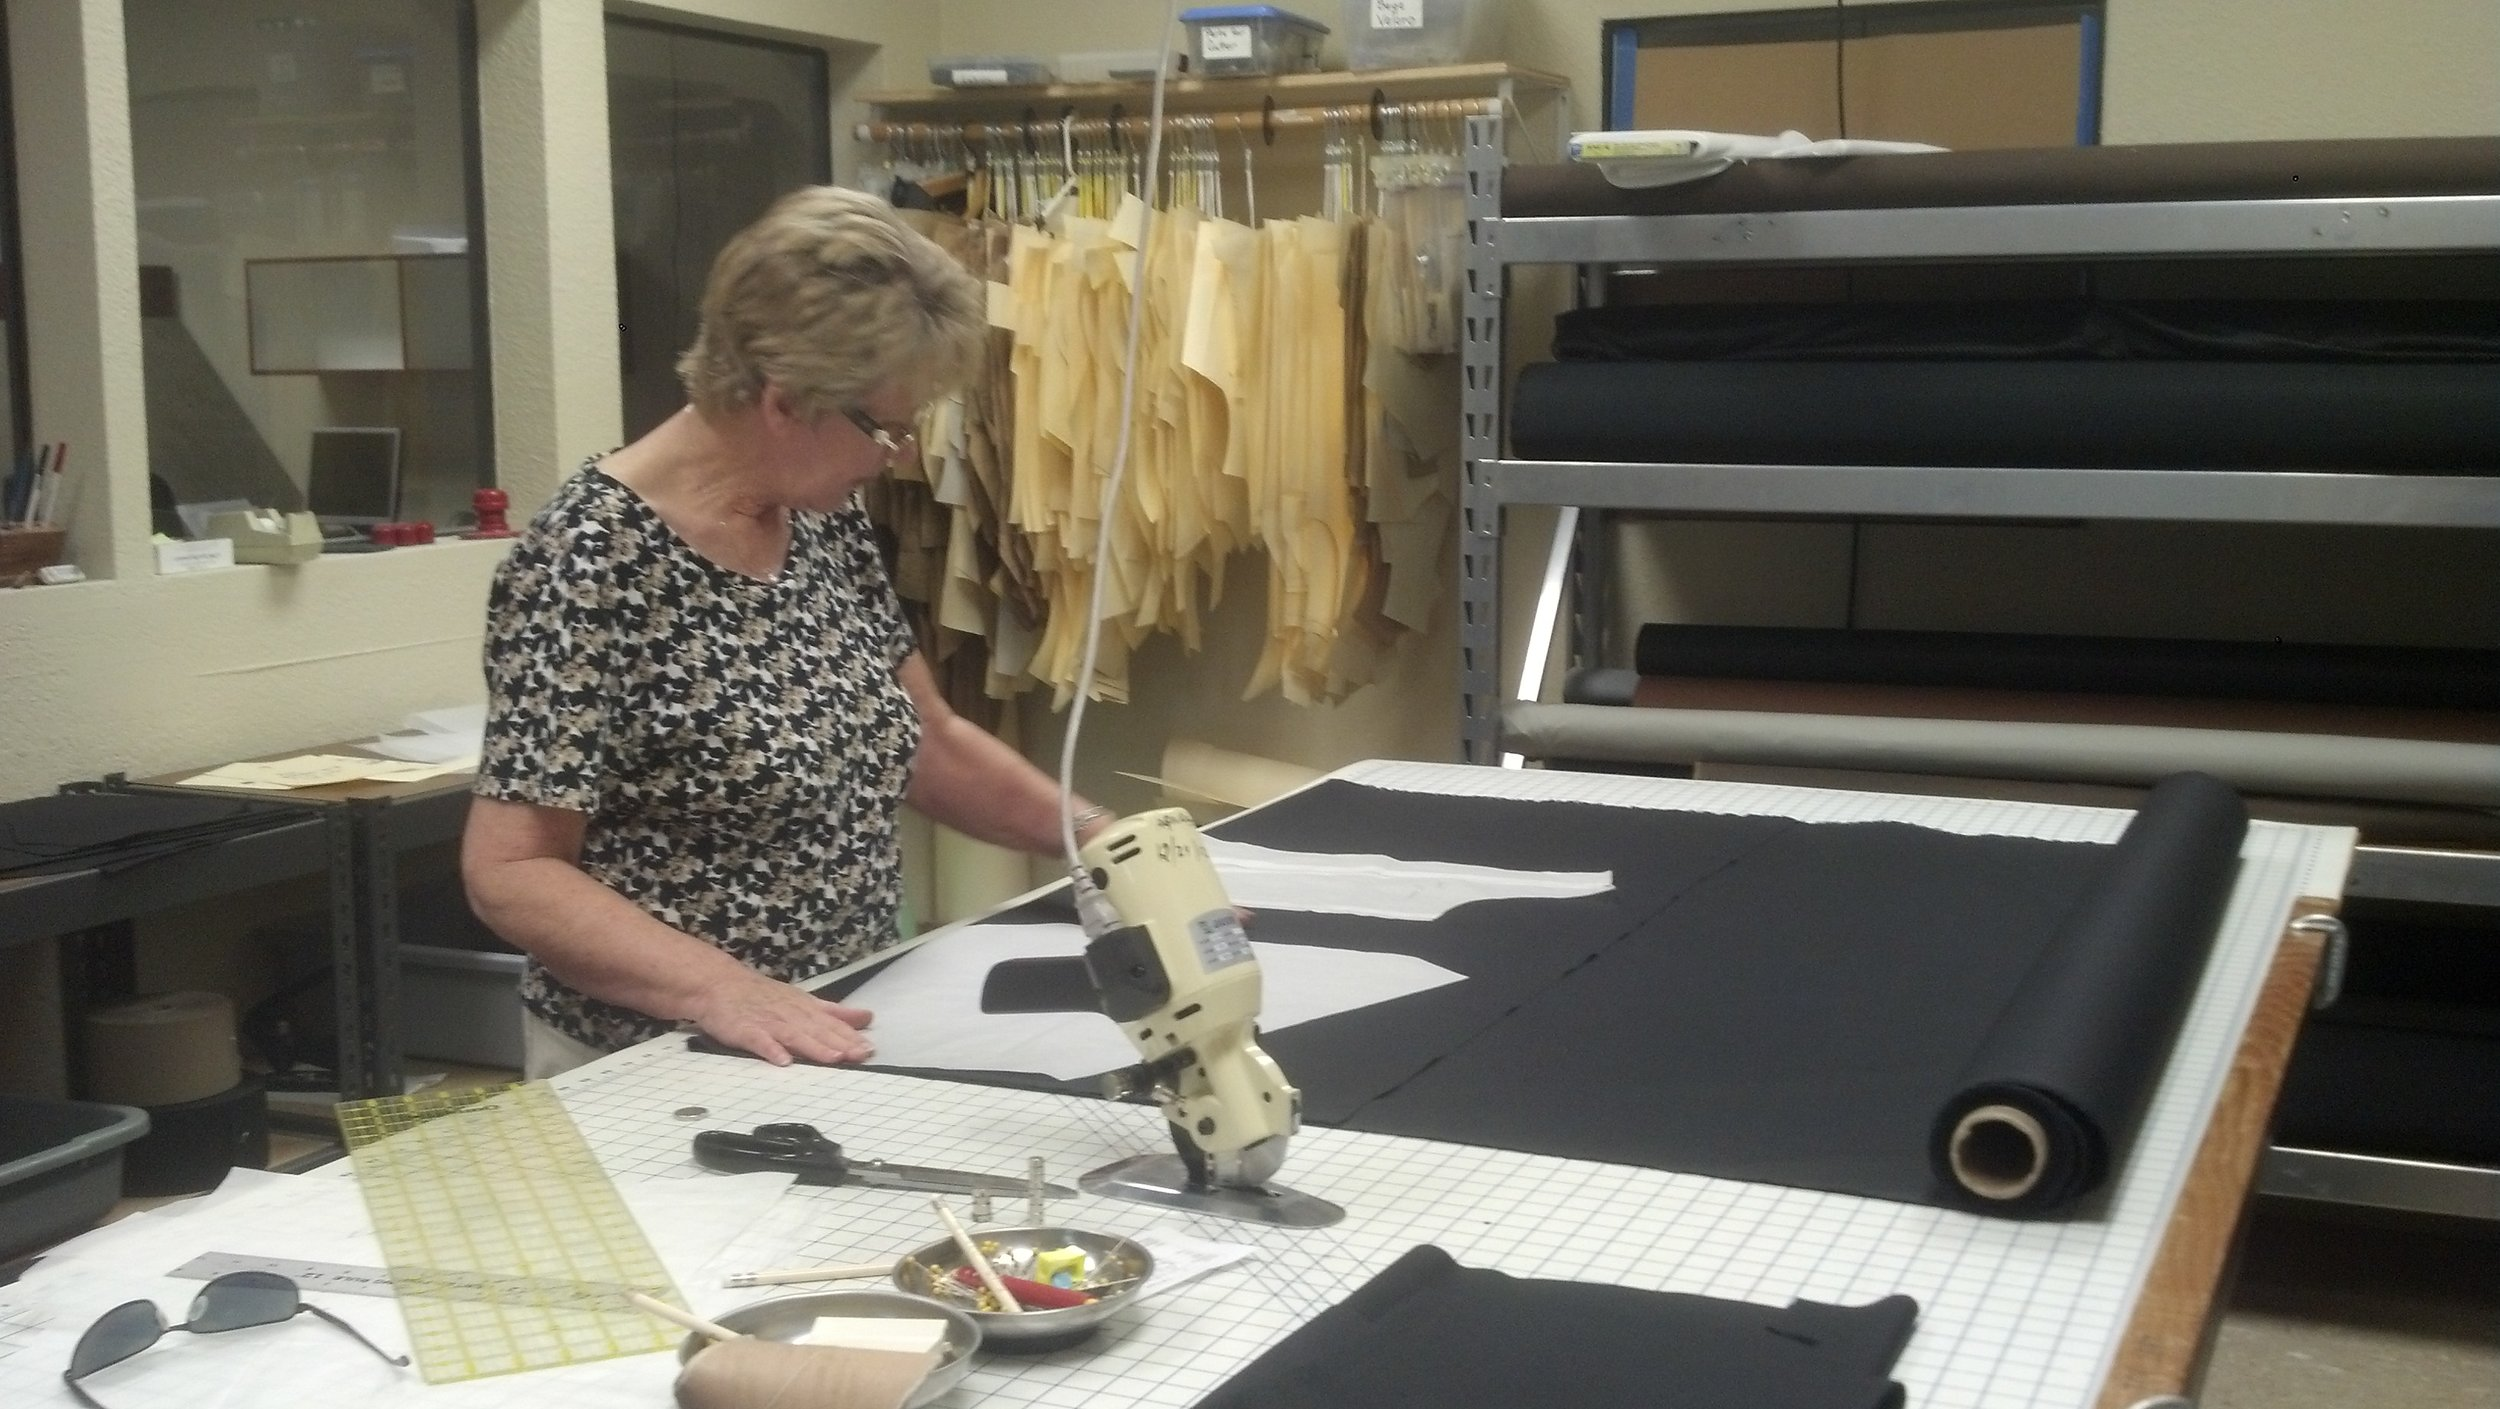 linda creating vests.jpg